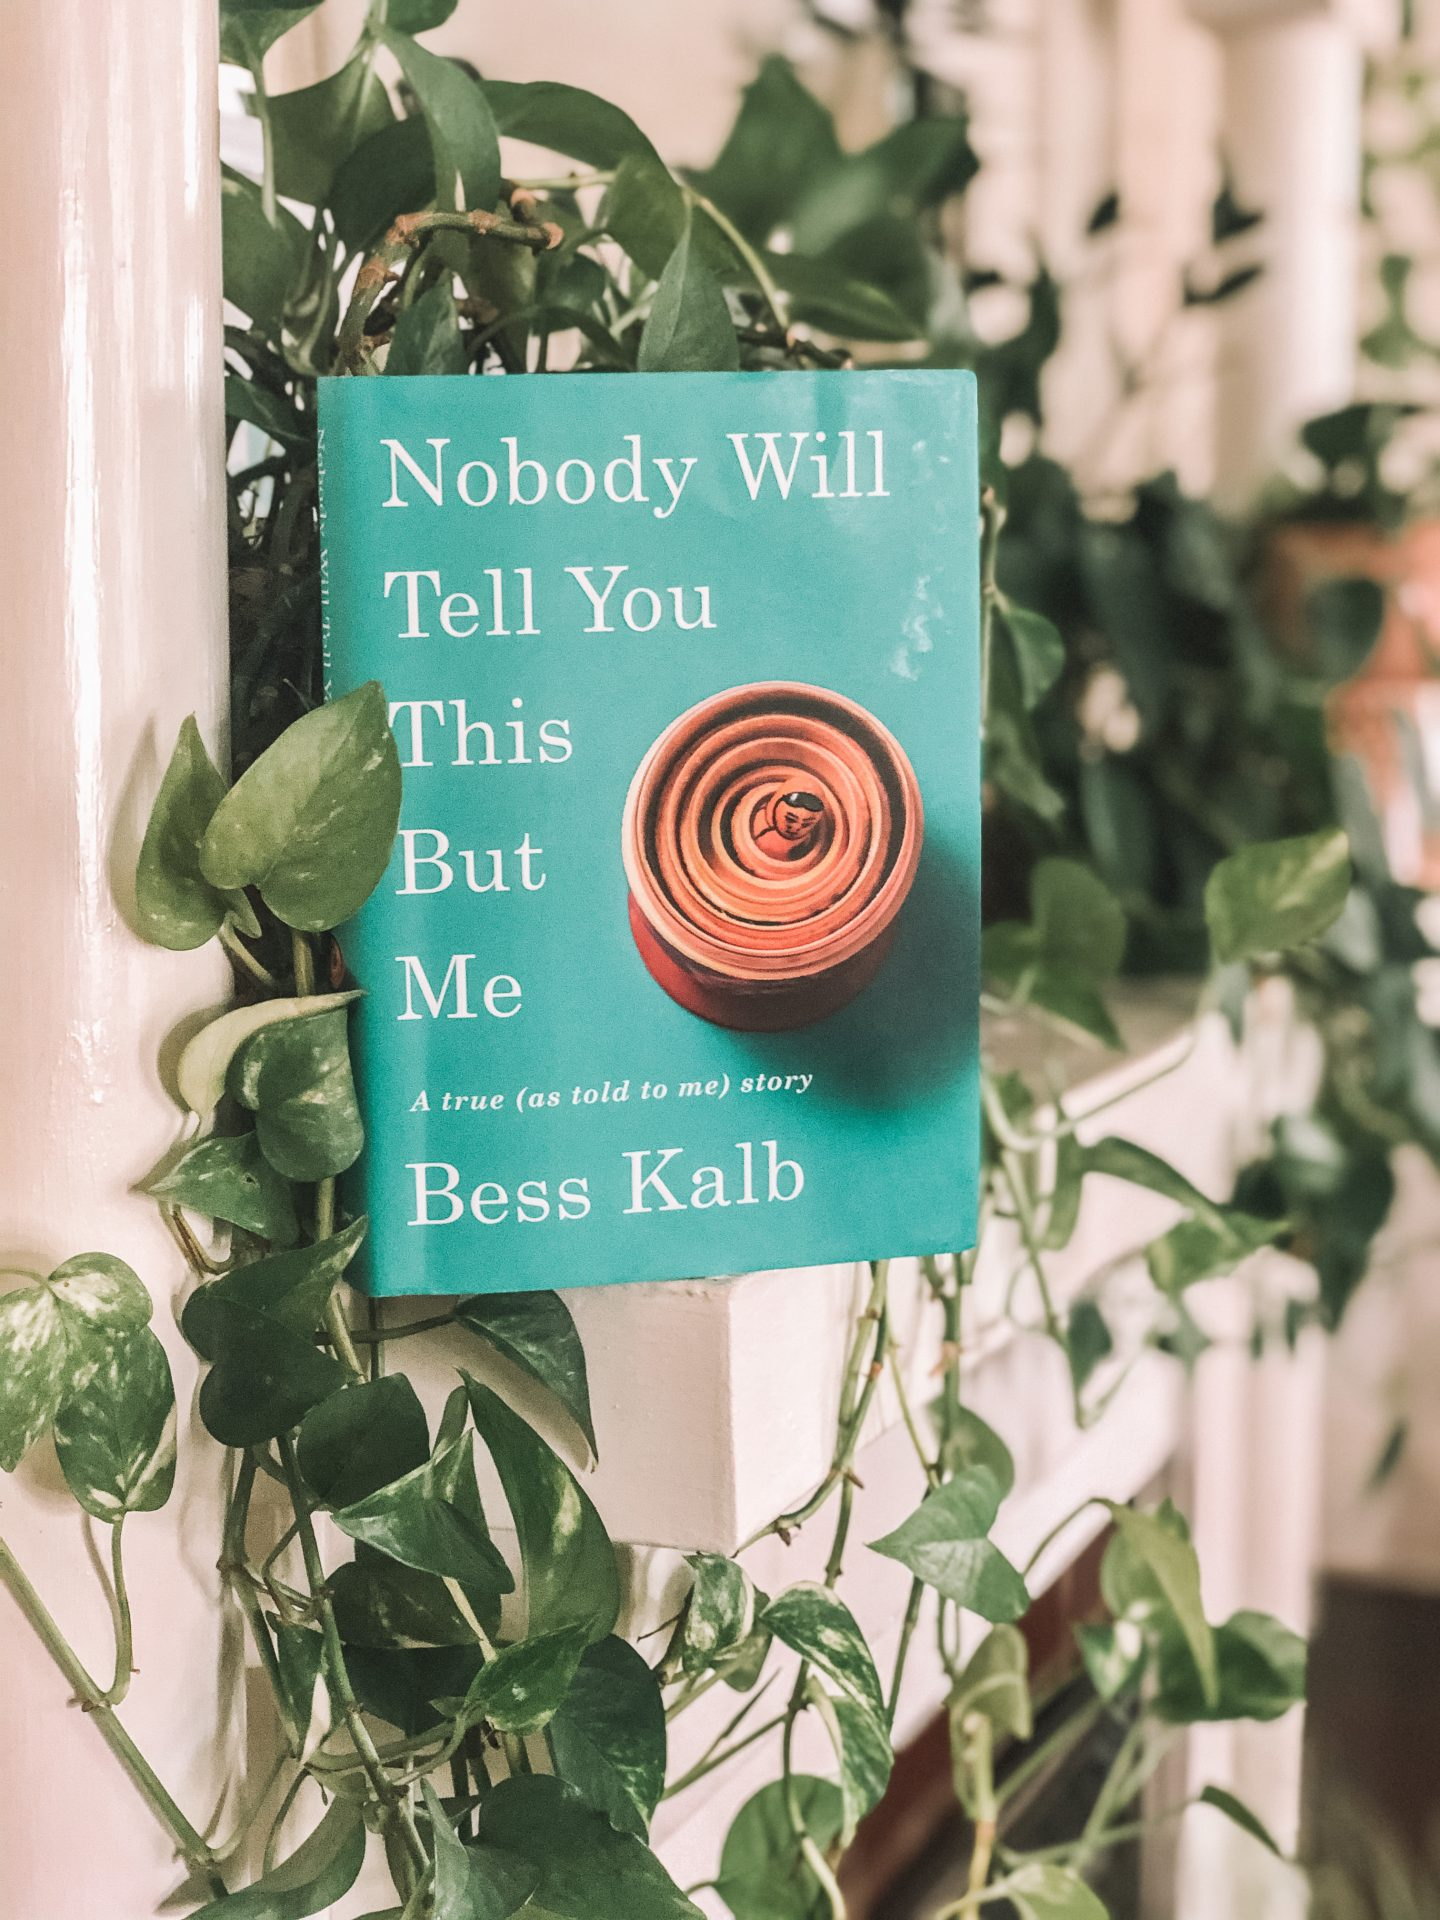 "Have you ever read a book that has devastated you to your soul, made you envious, and had you hysterically laughing all within 10 minutes? ""Nobody Will Tell You This but Me"" by Bess Kalb was this book. Easily my FAVORITE read of the year. This memoir-esque book full of voicemails, phone conversations, and memories was witty and had me sobbing with snot running but like in a good way. At its heart, the book is about a grandmother and granddaughter's relationship- the willingness to drop everything when needed, the well-intentioned but never asked for advice, and the love so clear and evident. It's a beautiful journey I never wanted to end. This book is perfect for those who had those relationships with their grandmothers or who didn't (like me)."